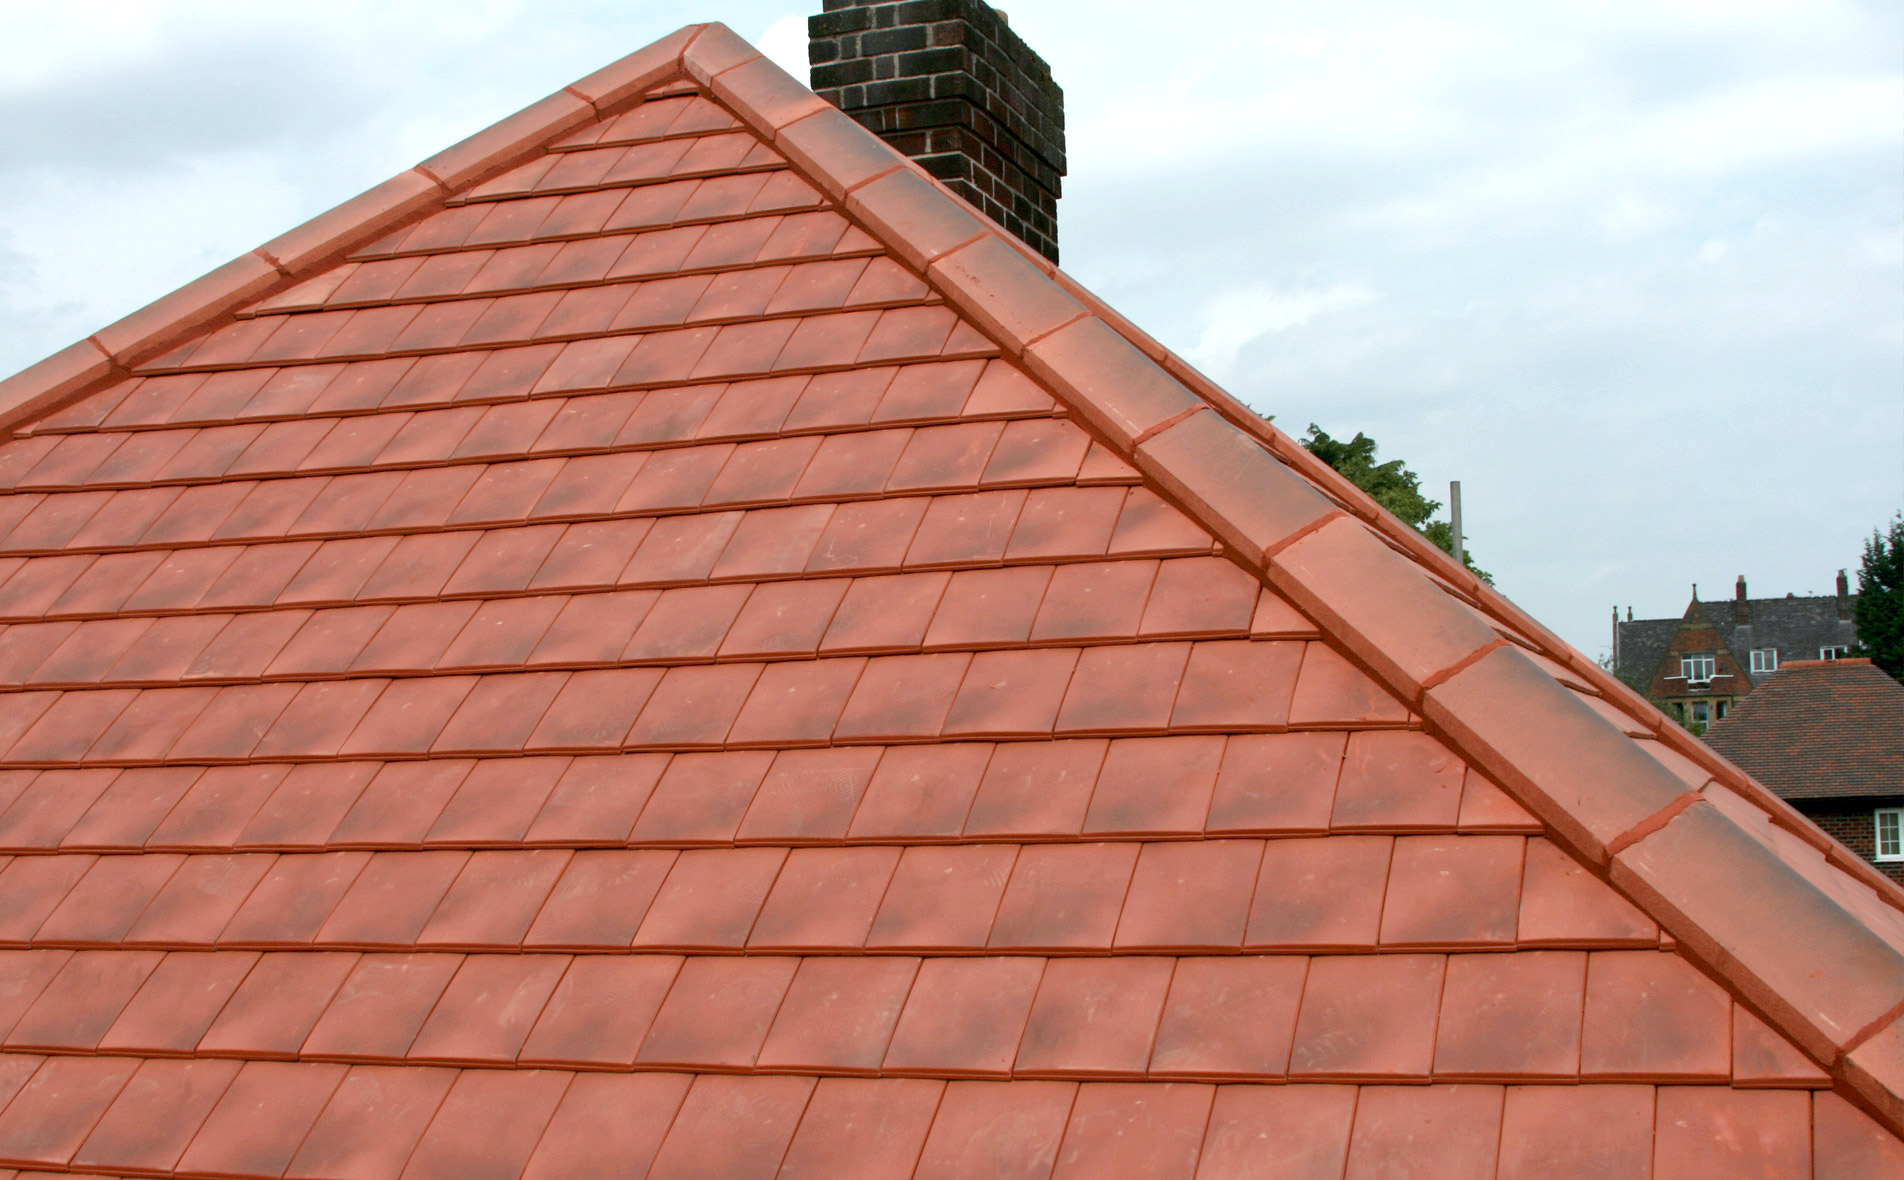 20 20 Clay Tiles Henshaws Roofing Amp Building Supplies